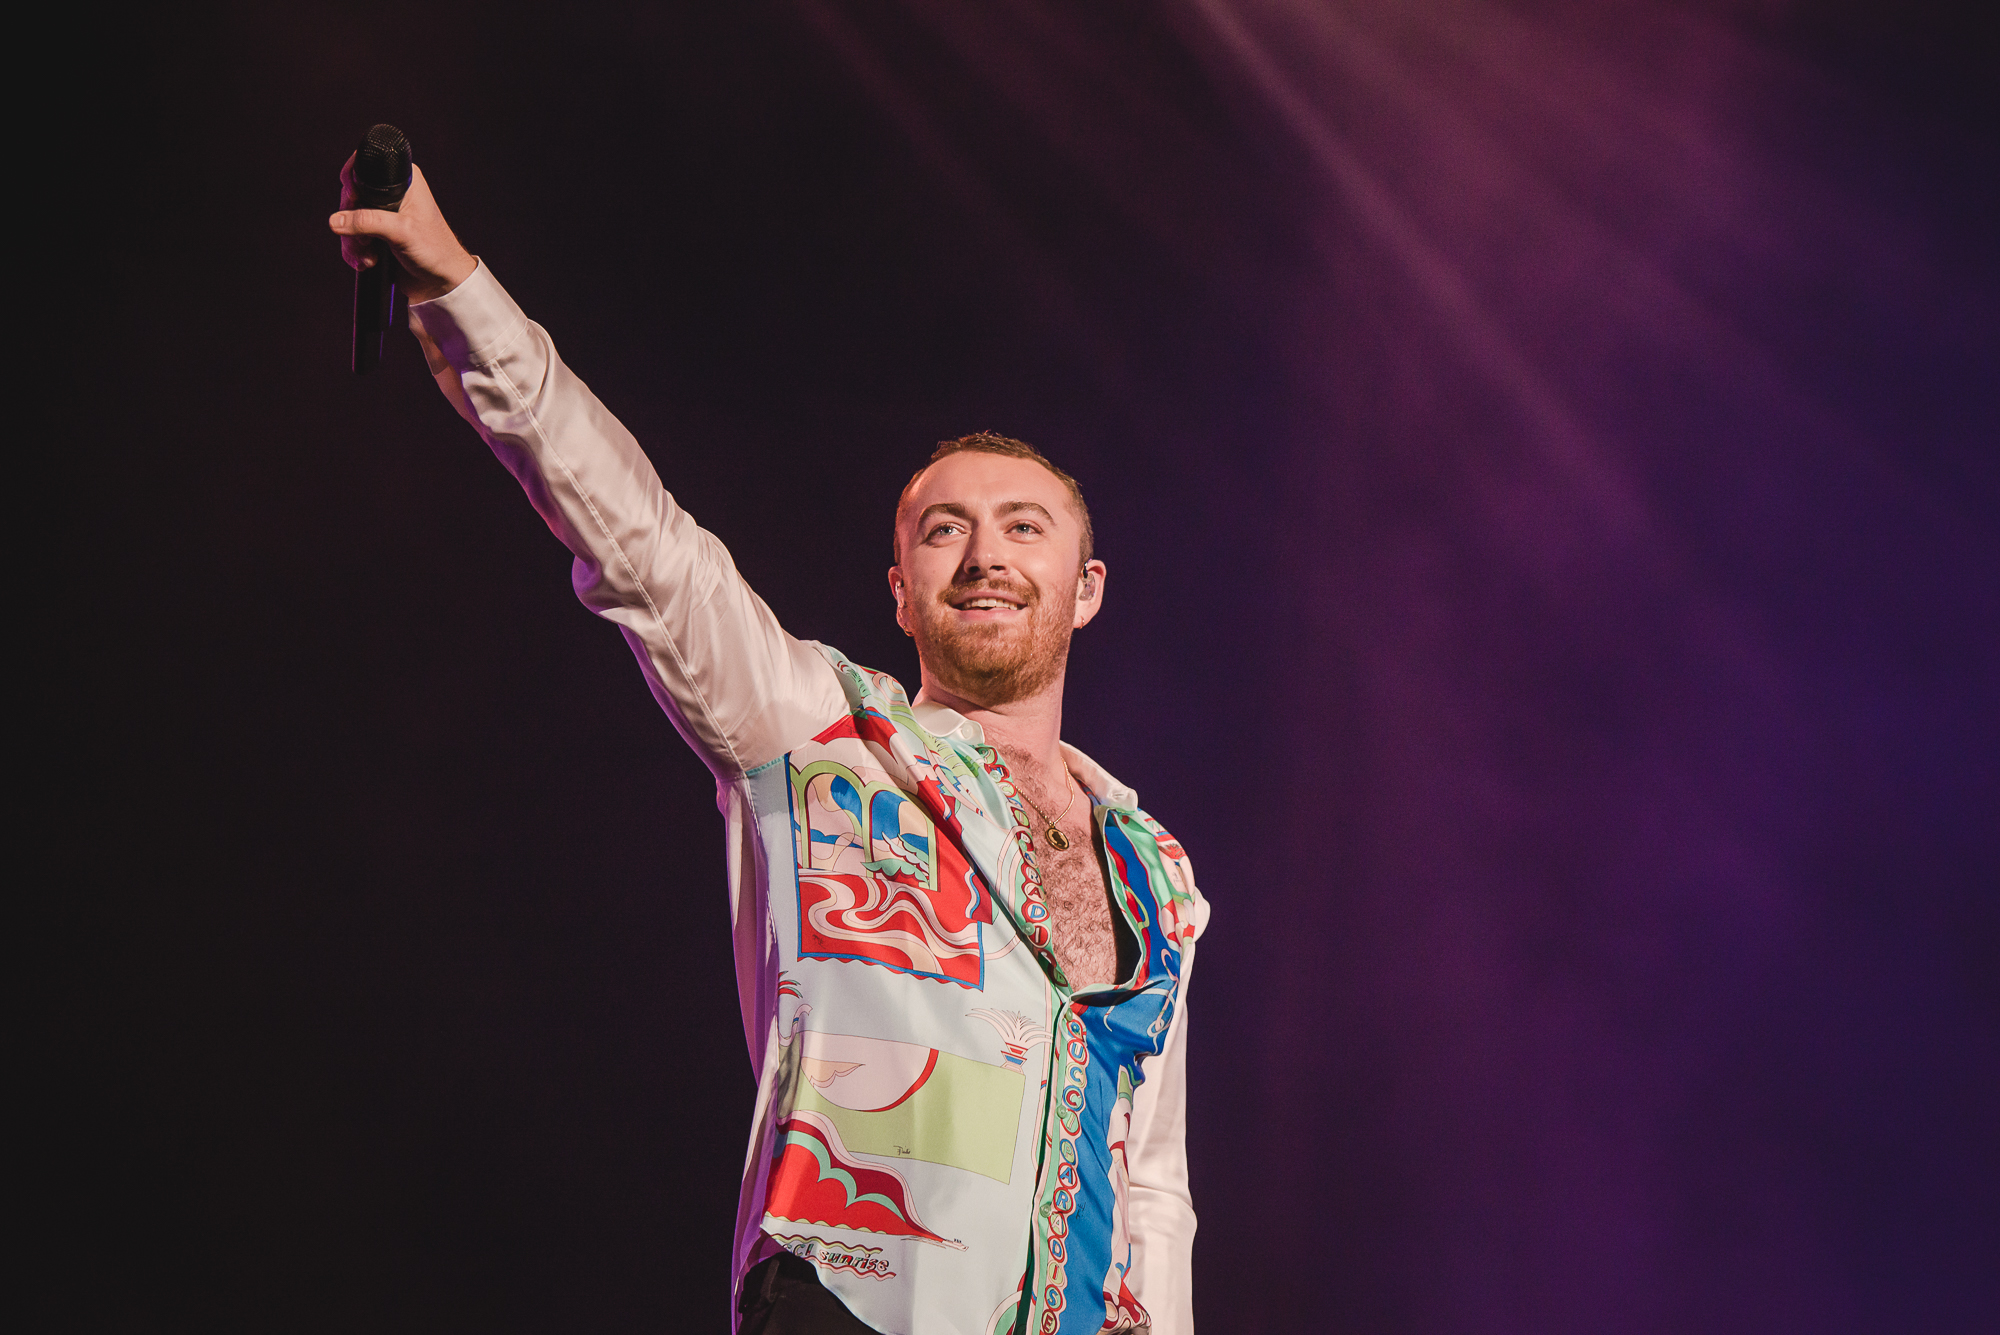 sam-smith-lollapalooza-2019-2